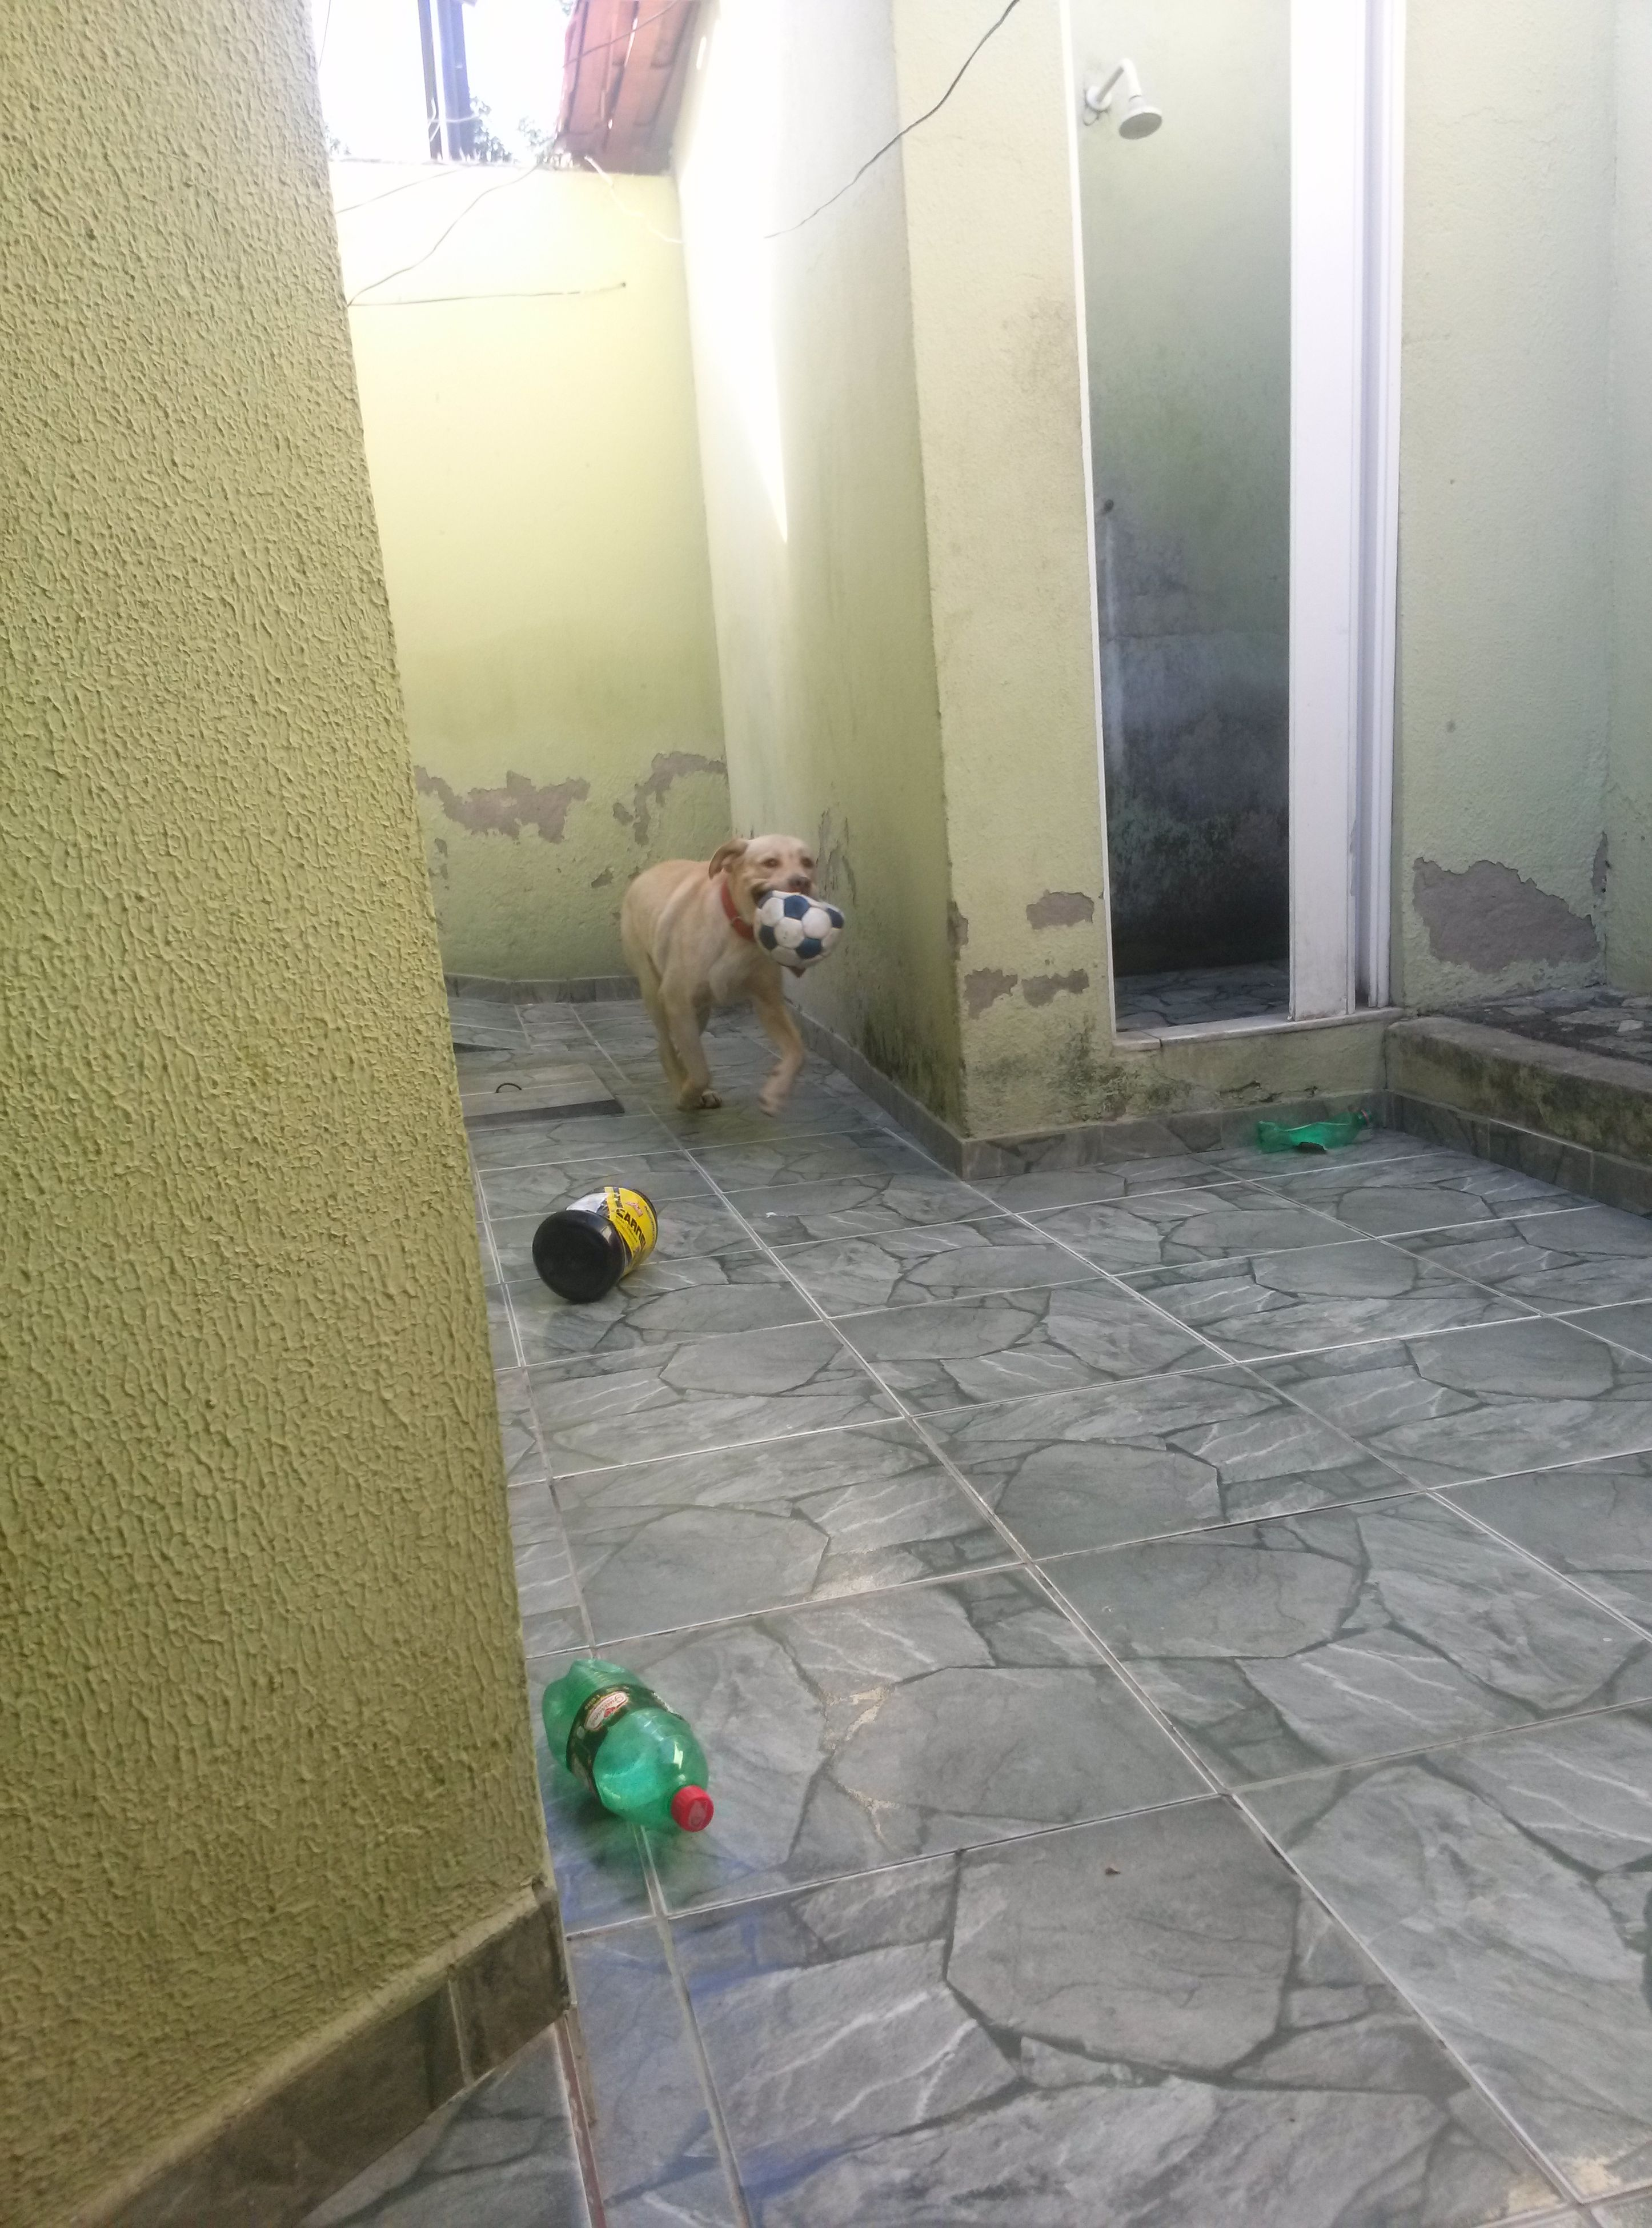 indoors, tiled floor, built structure, flooring, architecture, door, window, tile, sunlight, empty, animal themes, house, day, no people, floor, wall - building feature, paving stone, entrance, building, domestic animals